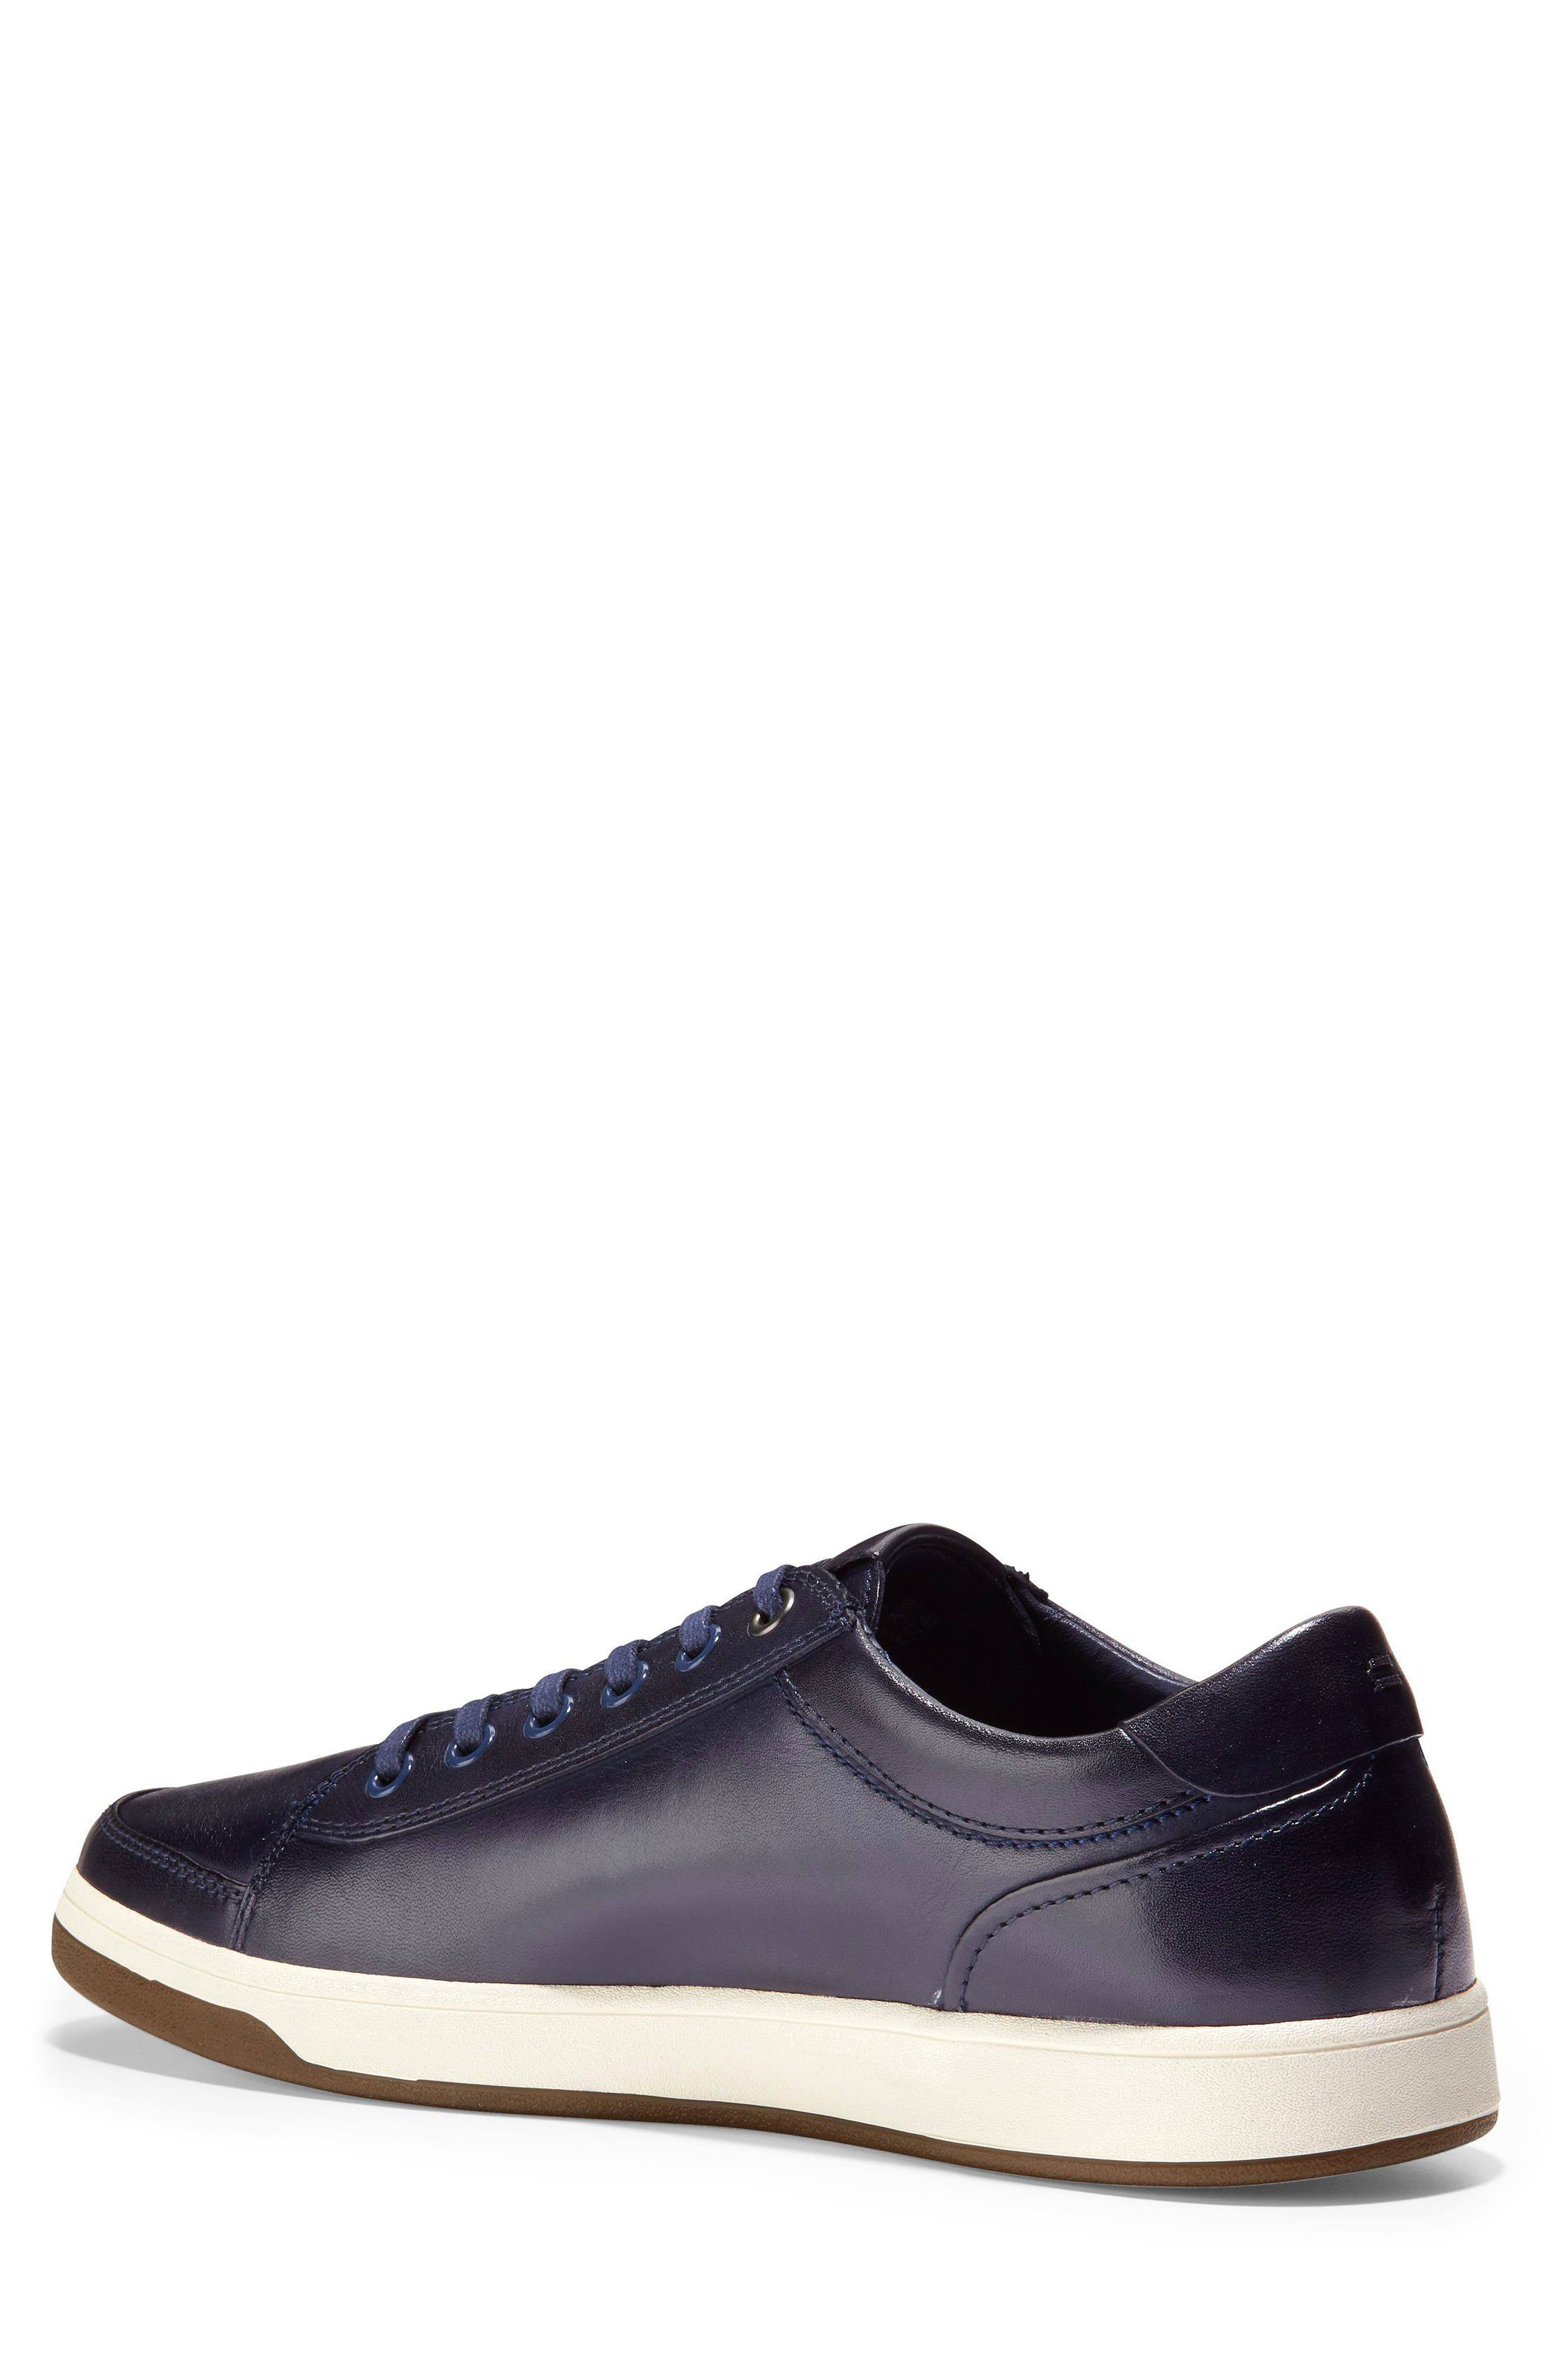 GrandPro Spectator Sneaker,                             Alternate thumbnail 2, color,                             BLAZER BLUE HANDSTAIN LEATHER